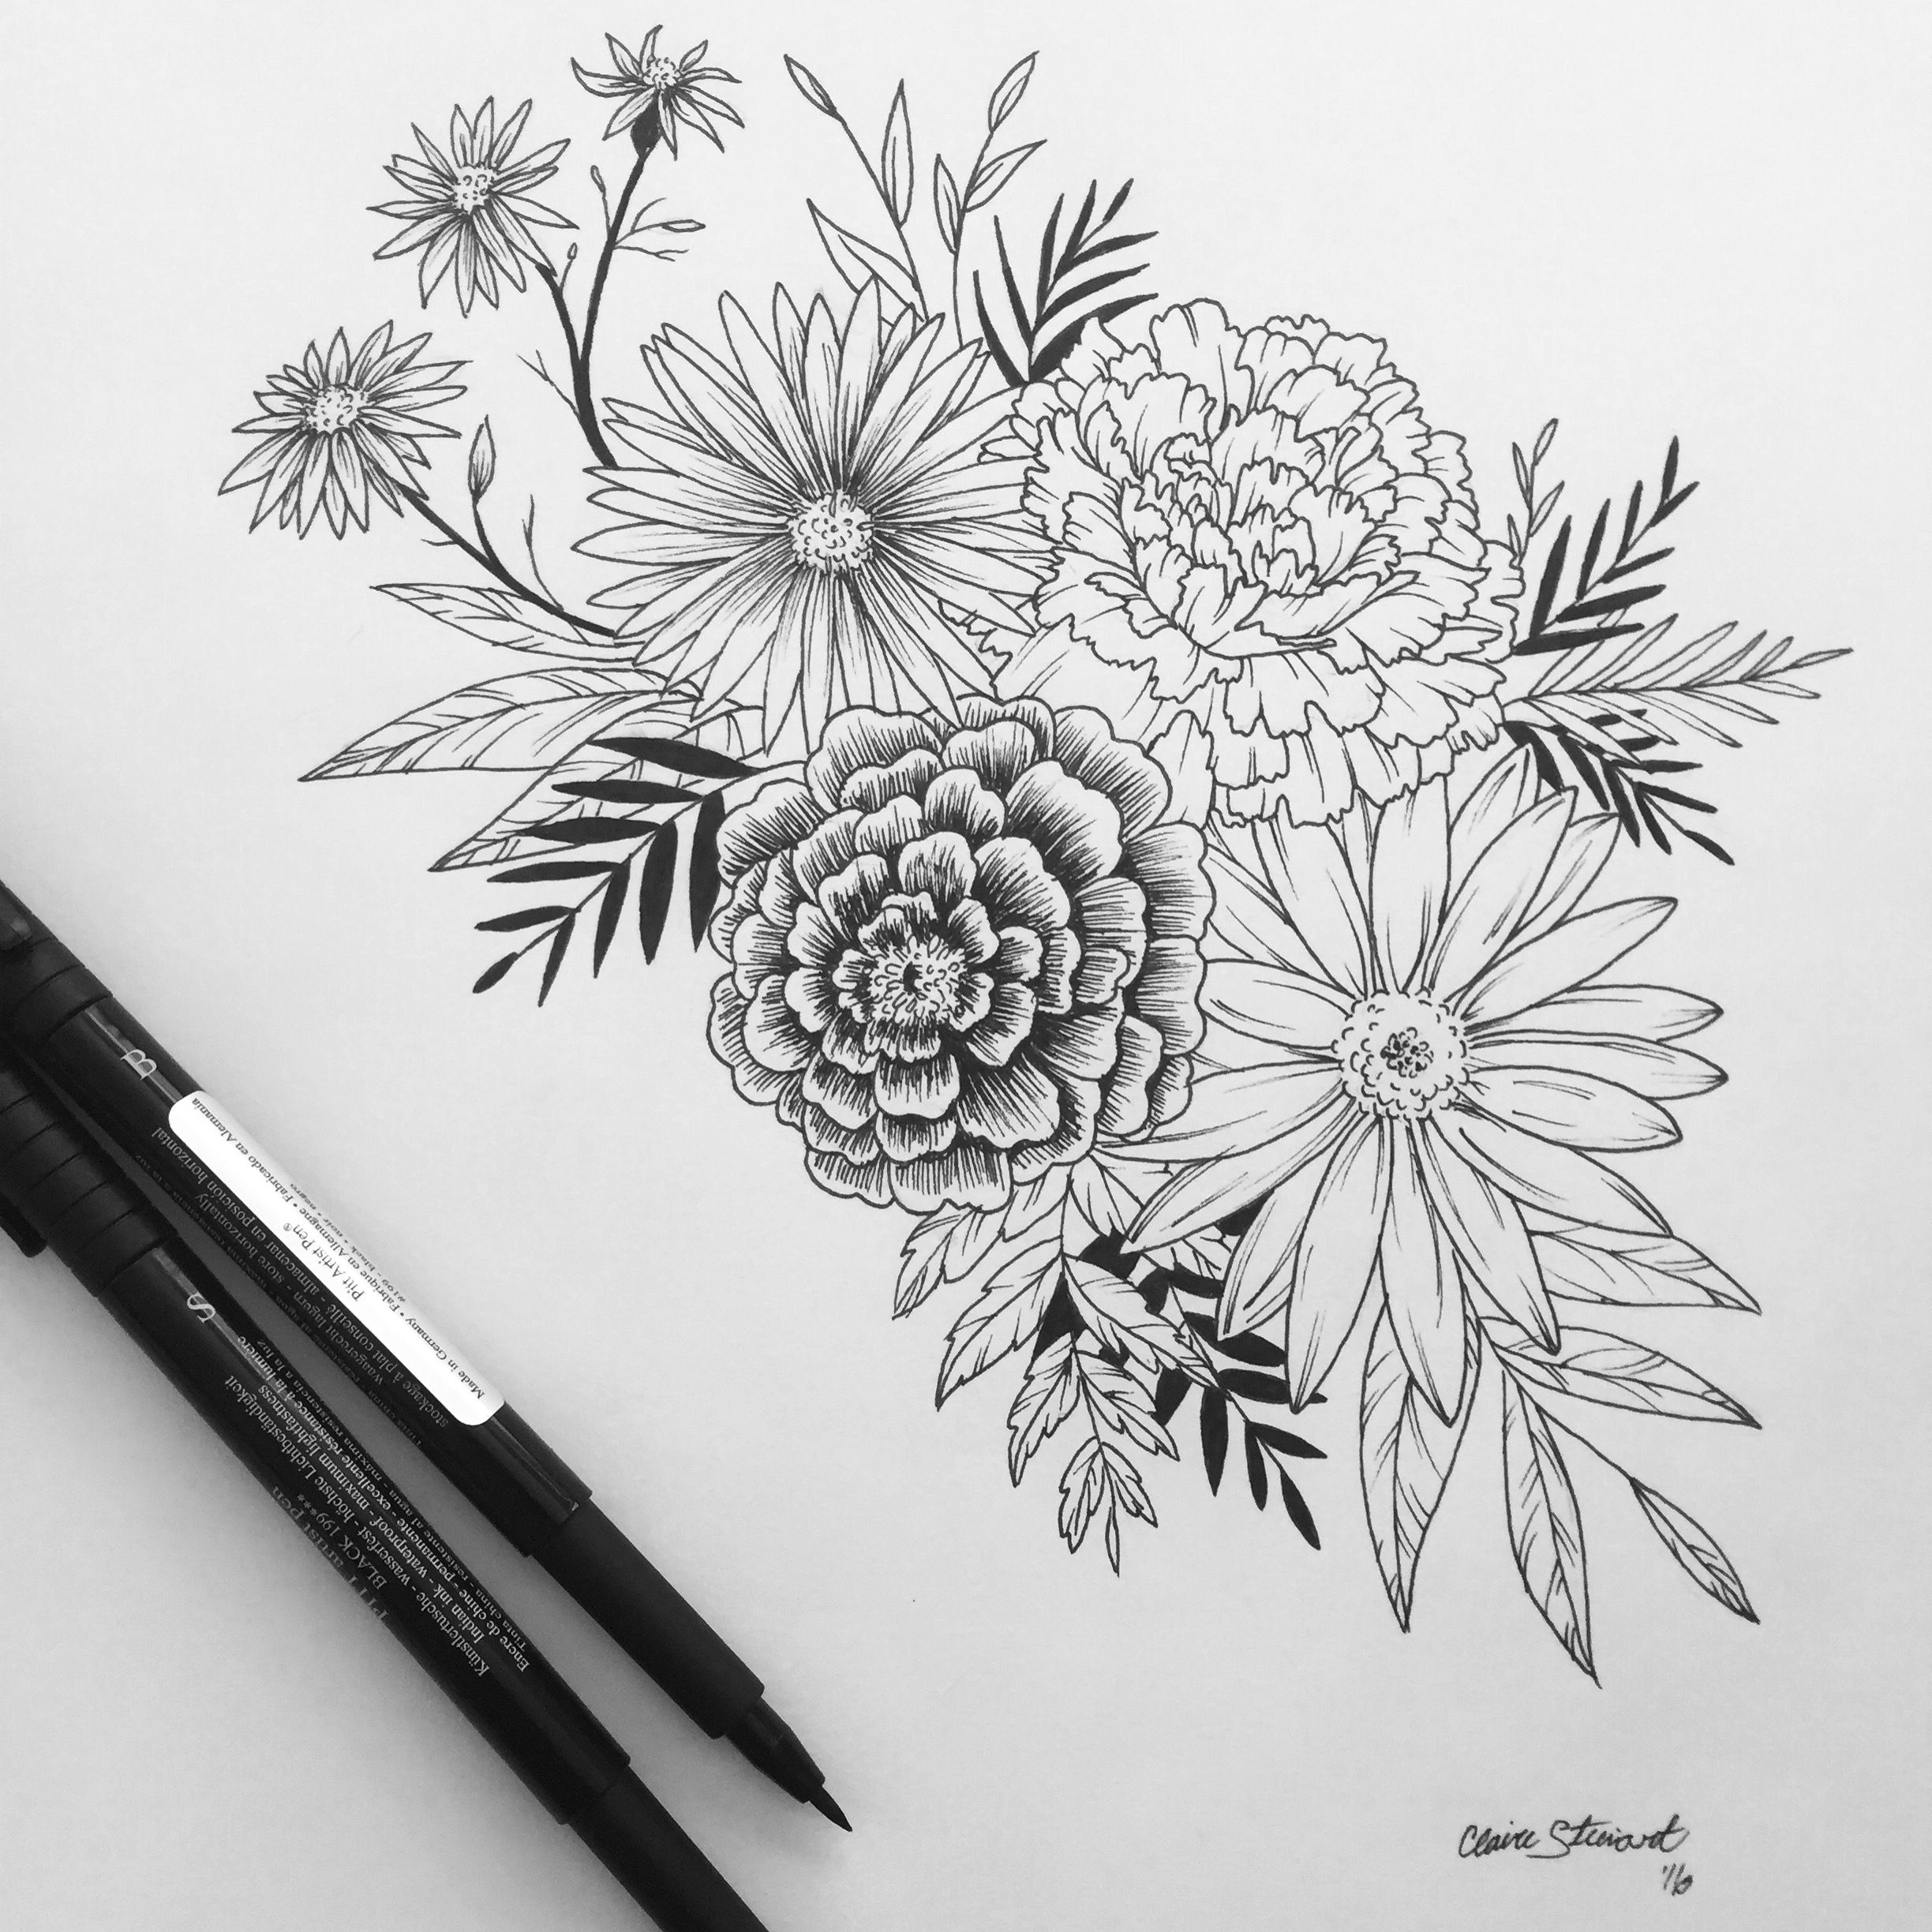 floral tattoo contact me for custom drawings clairestokes93 yahoo